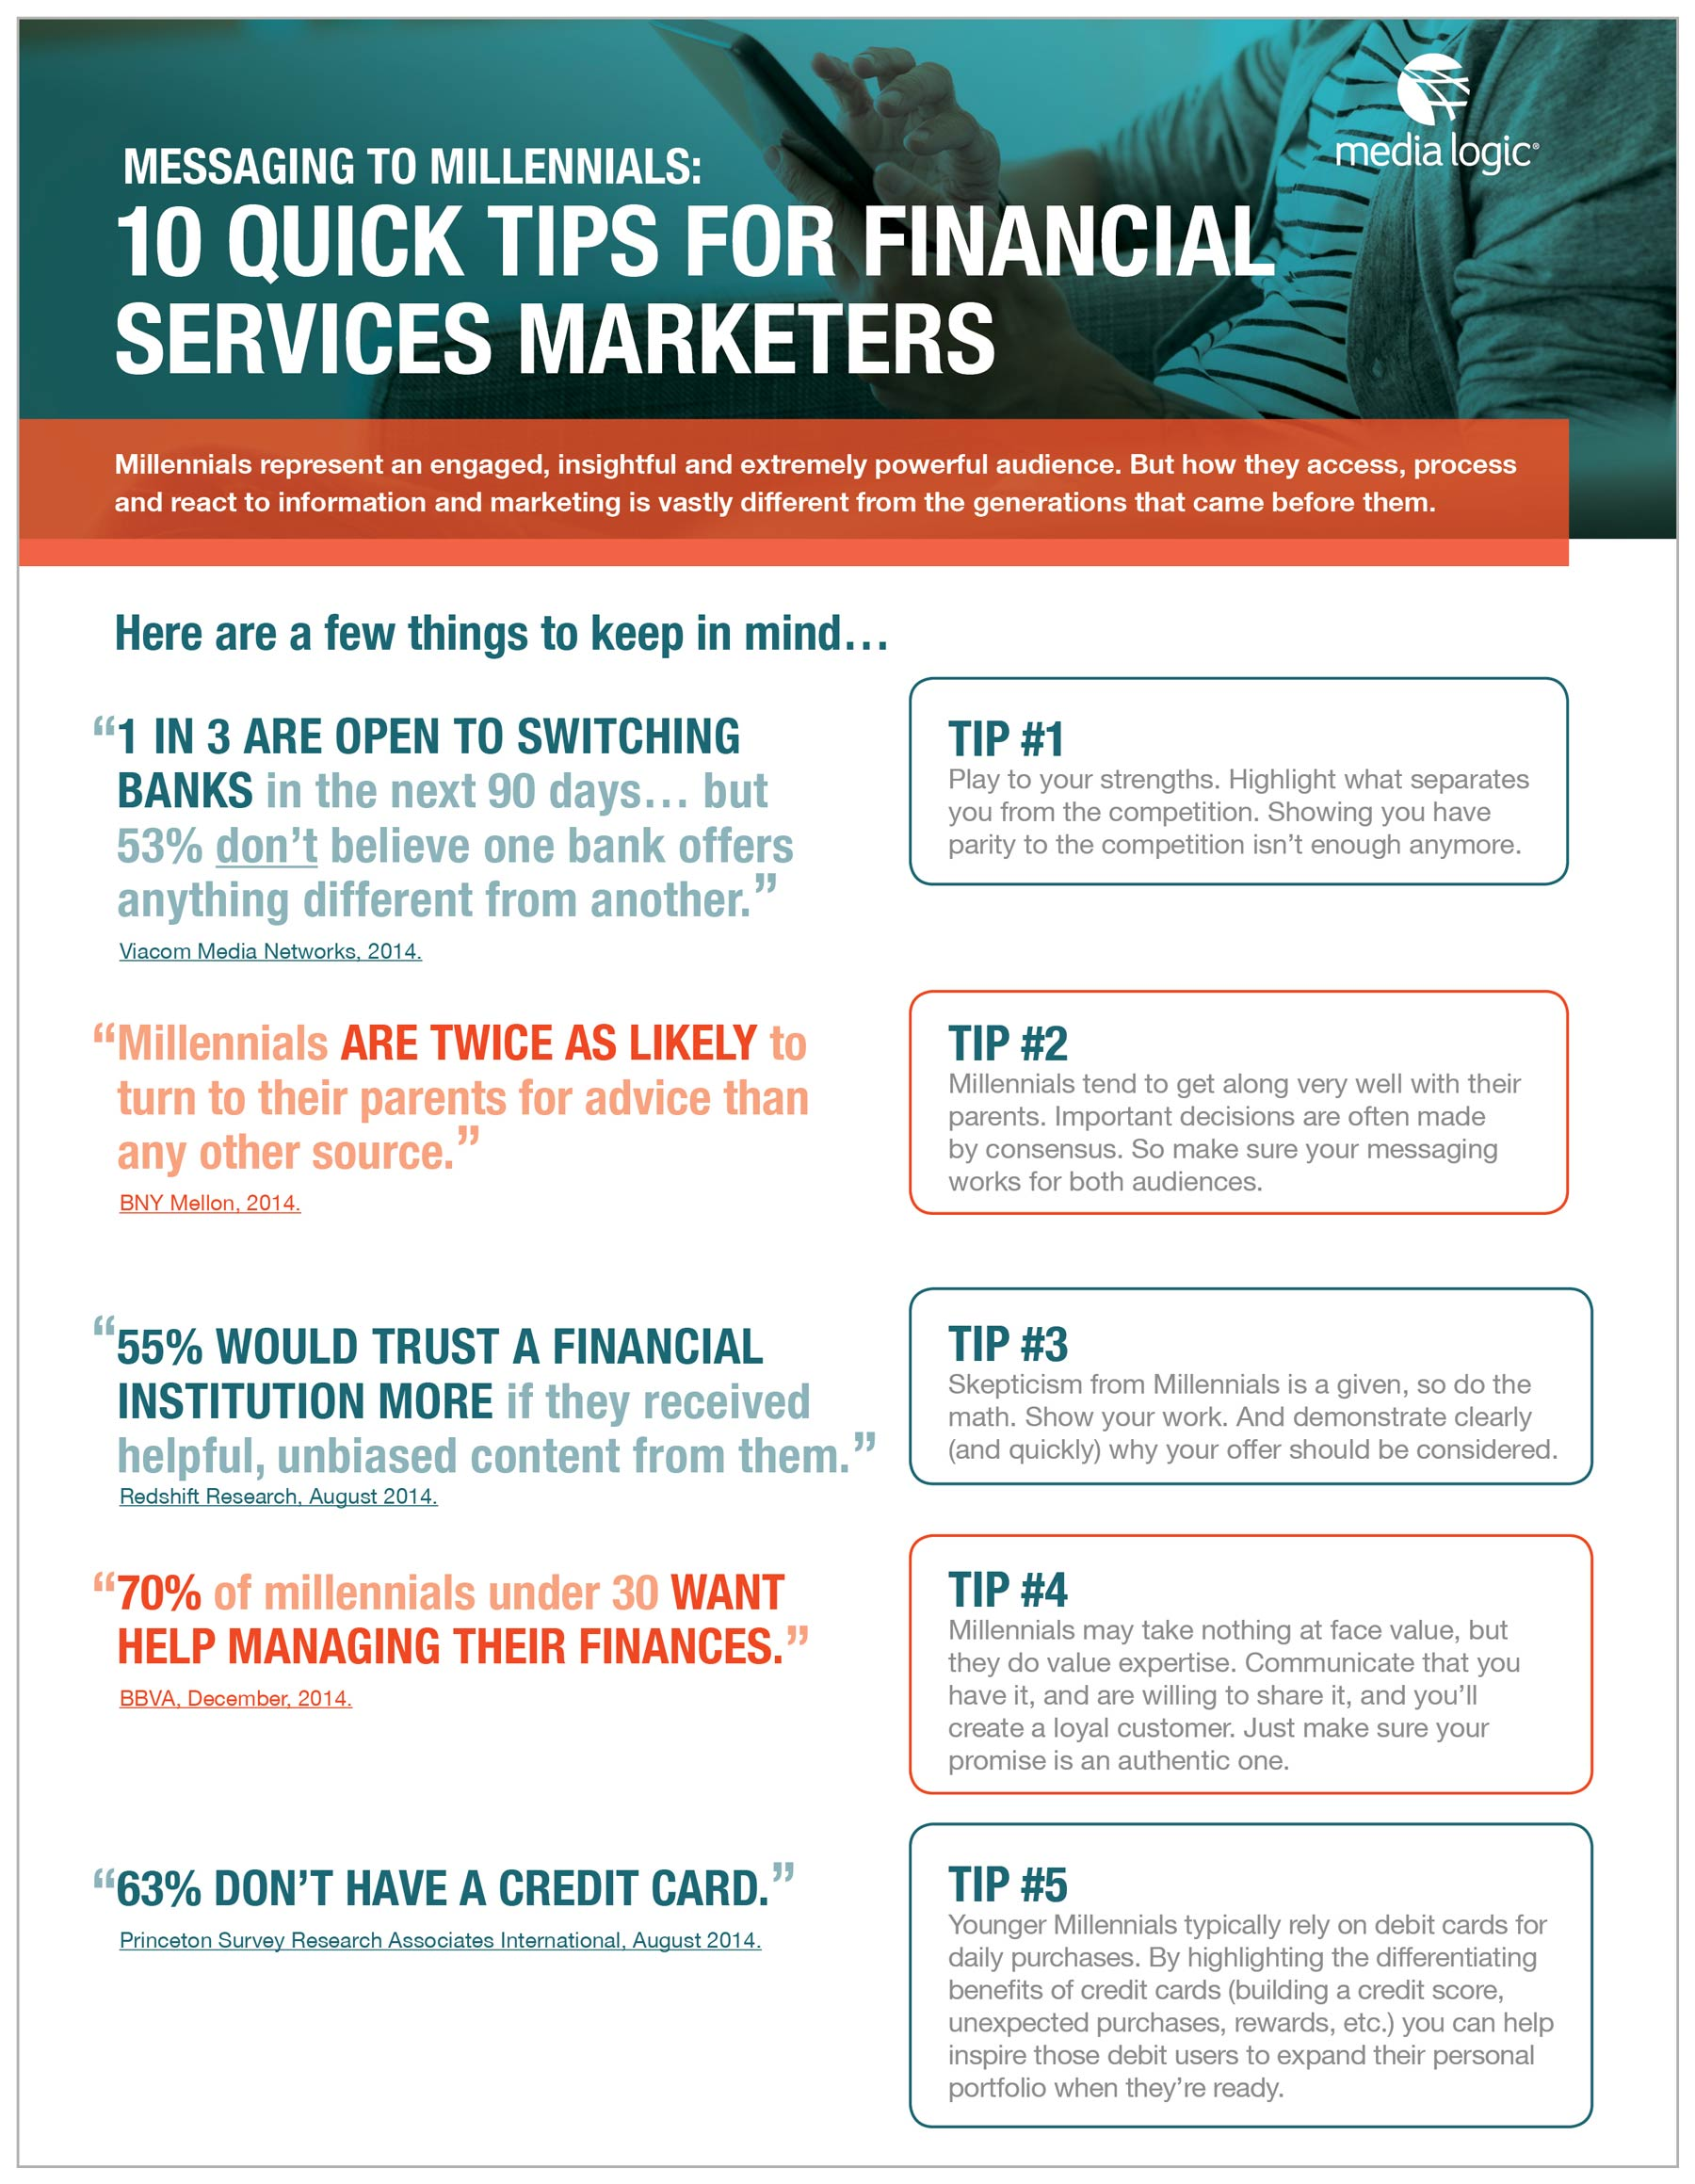 PDF Tip sheet for financial services marketers: The right messaging for Millennials